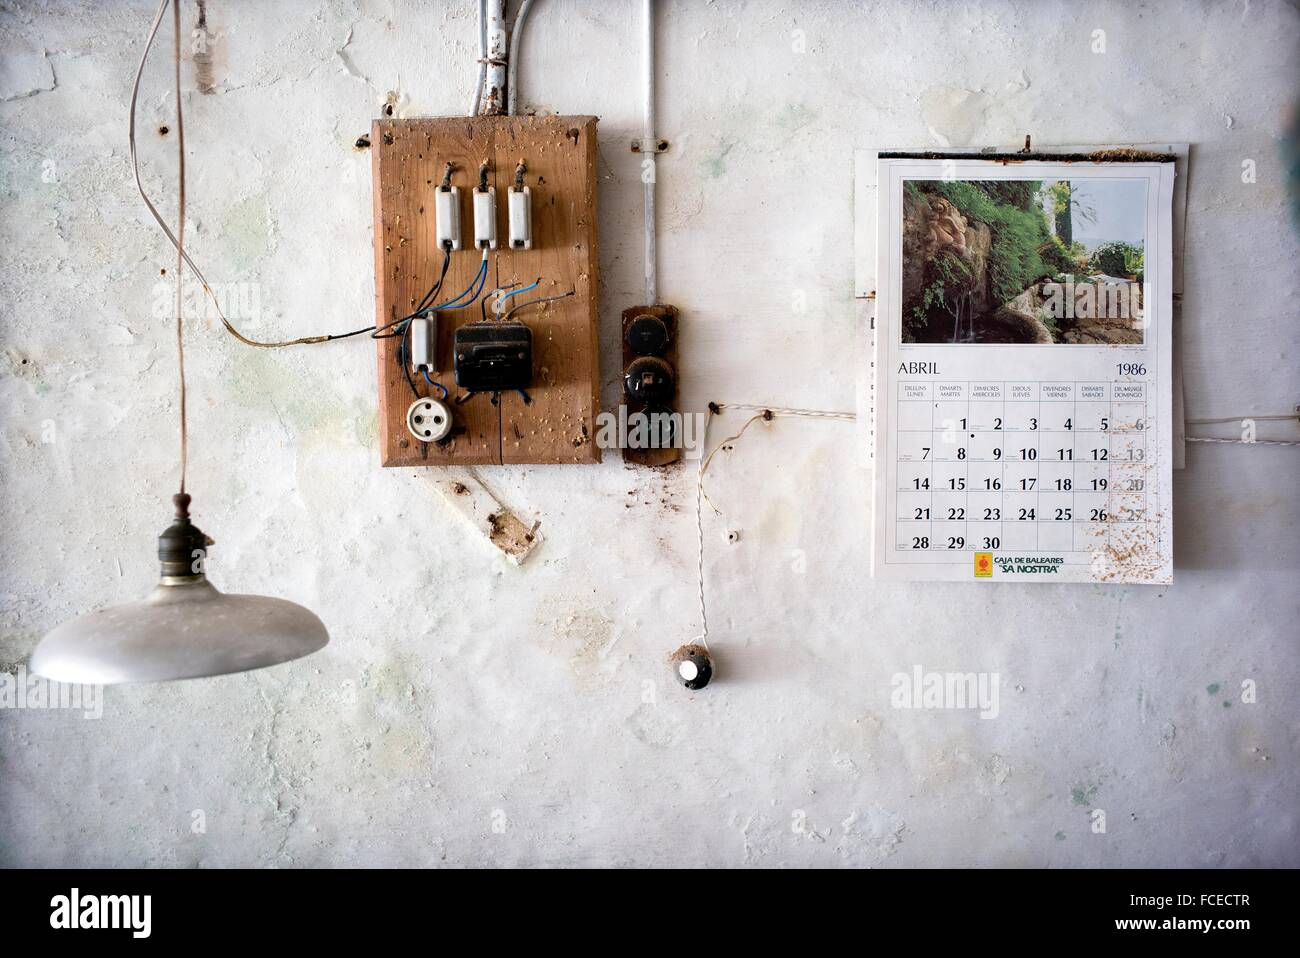 wall of an old workshop an electrical fuse box and plug a stock photo wall of an old workshop an electrical fuse box and plug a calendar from 1986 on the wall and a lamp hanging from